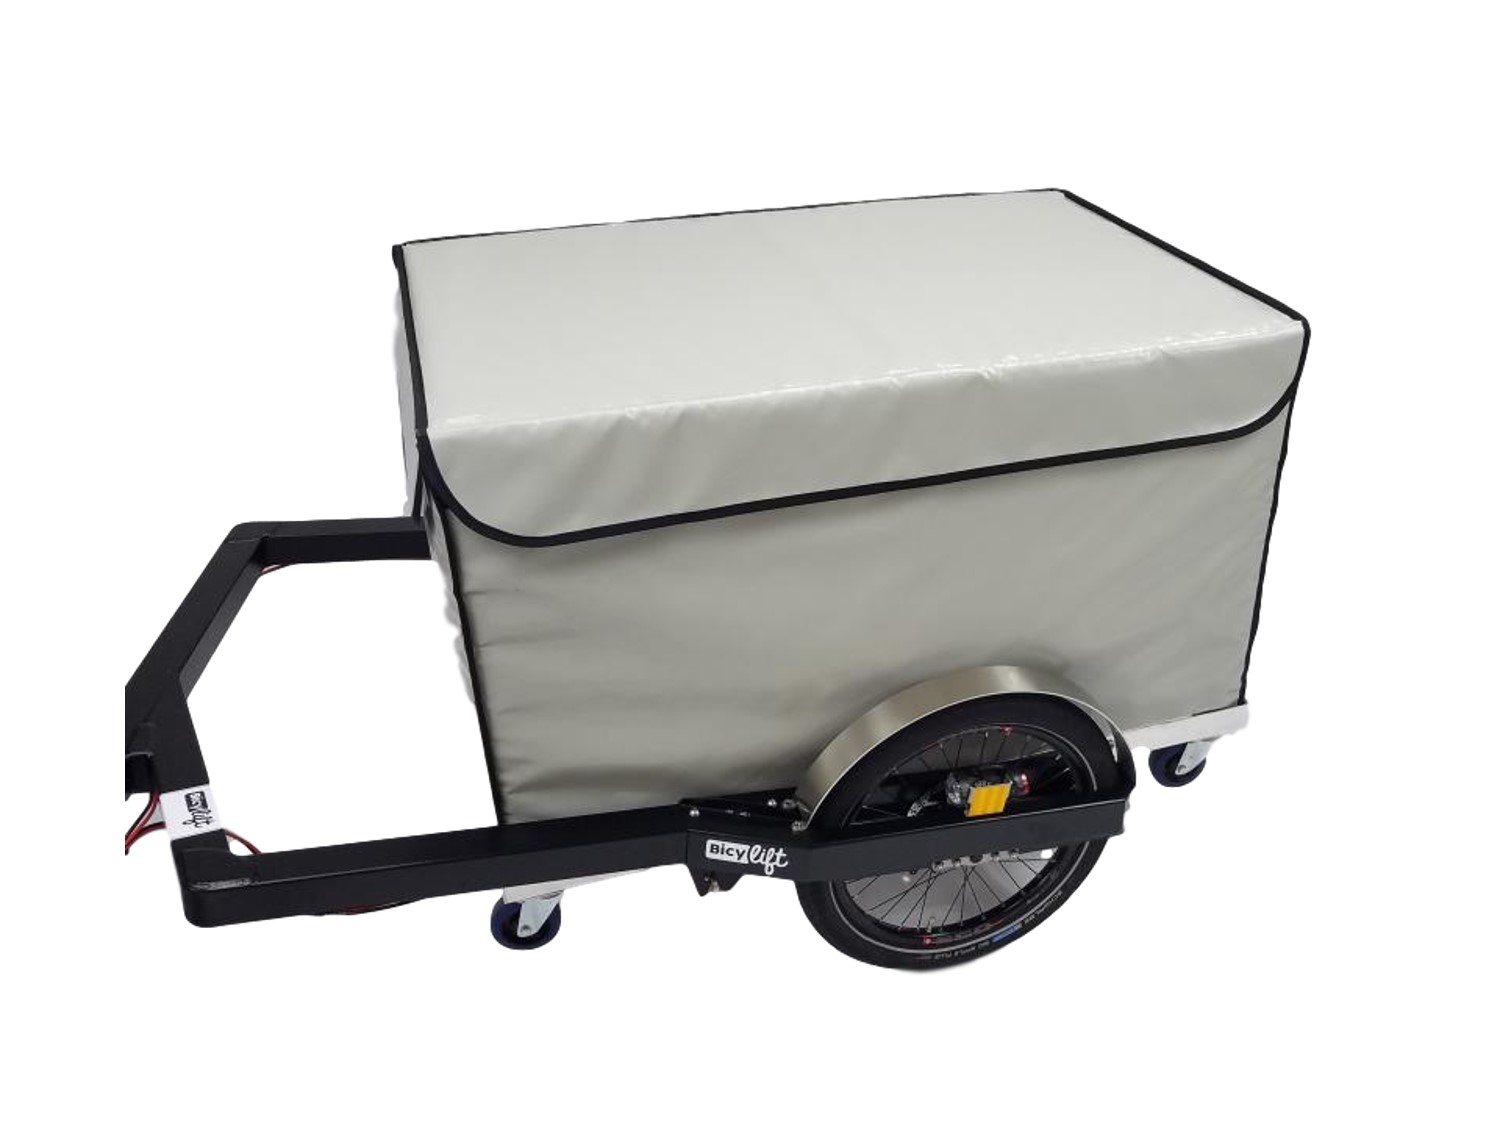 Refrigerated insulated pallet container for bicycle trailer Bicylift by Fleximodal